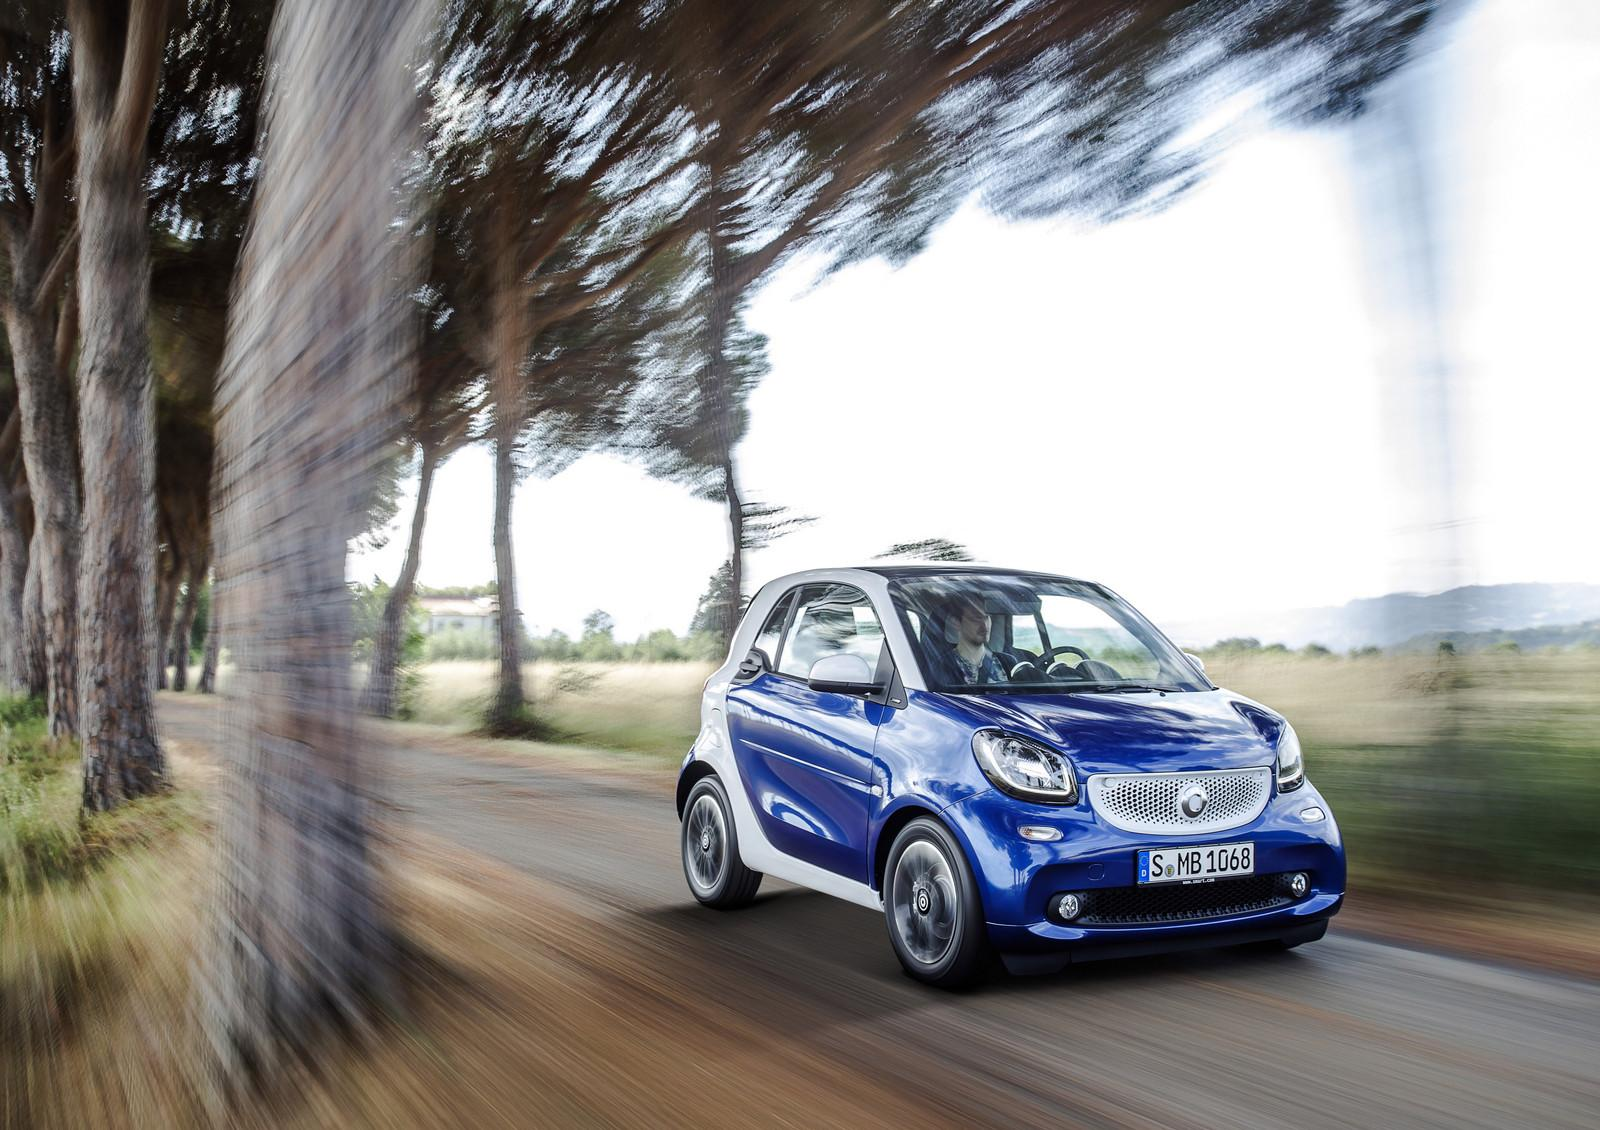 smart fortwo - SMART FORTWO 70 1.0 YOUNGSTER